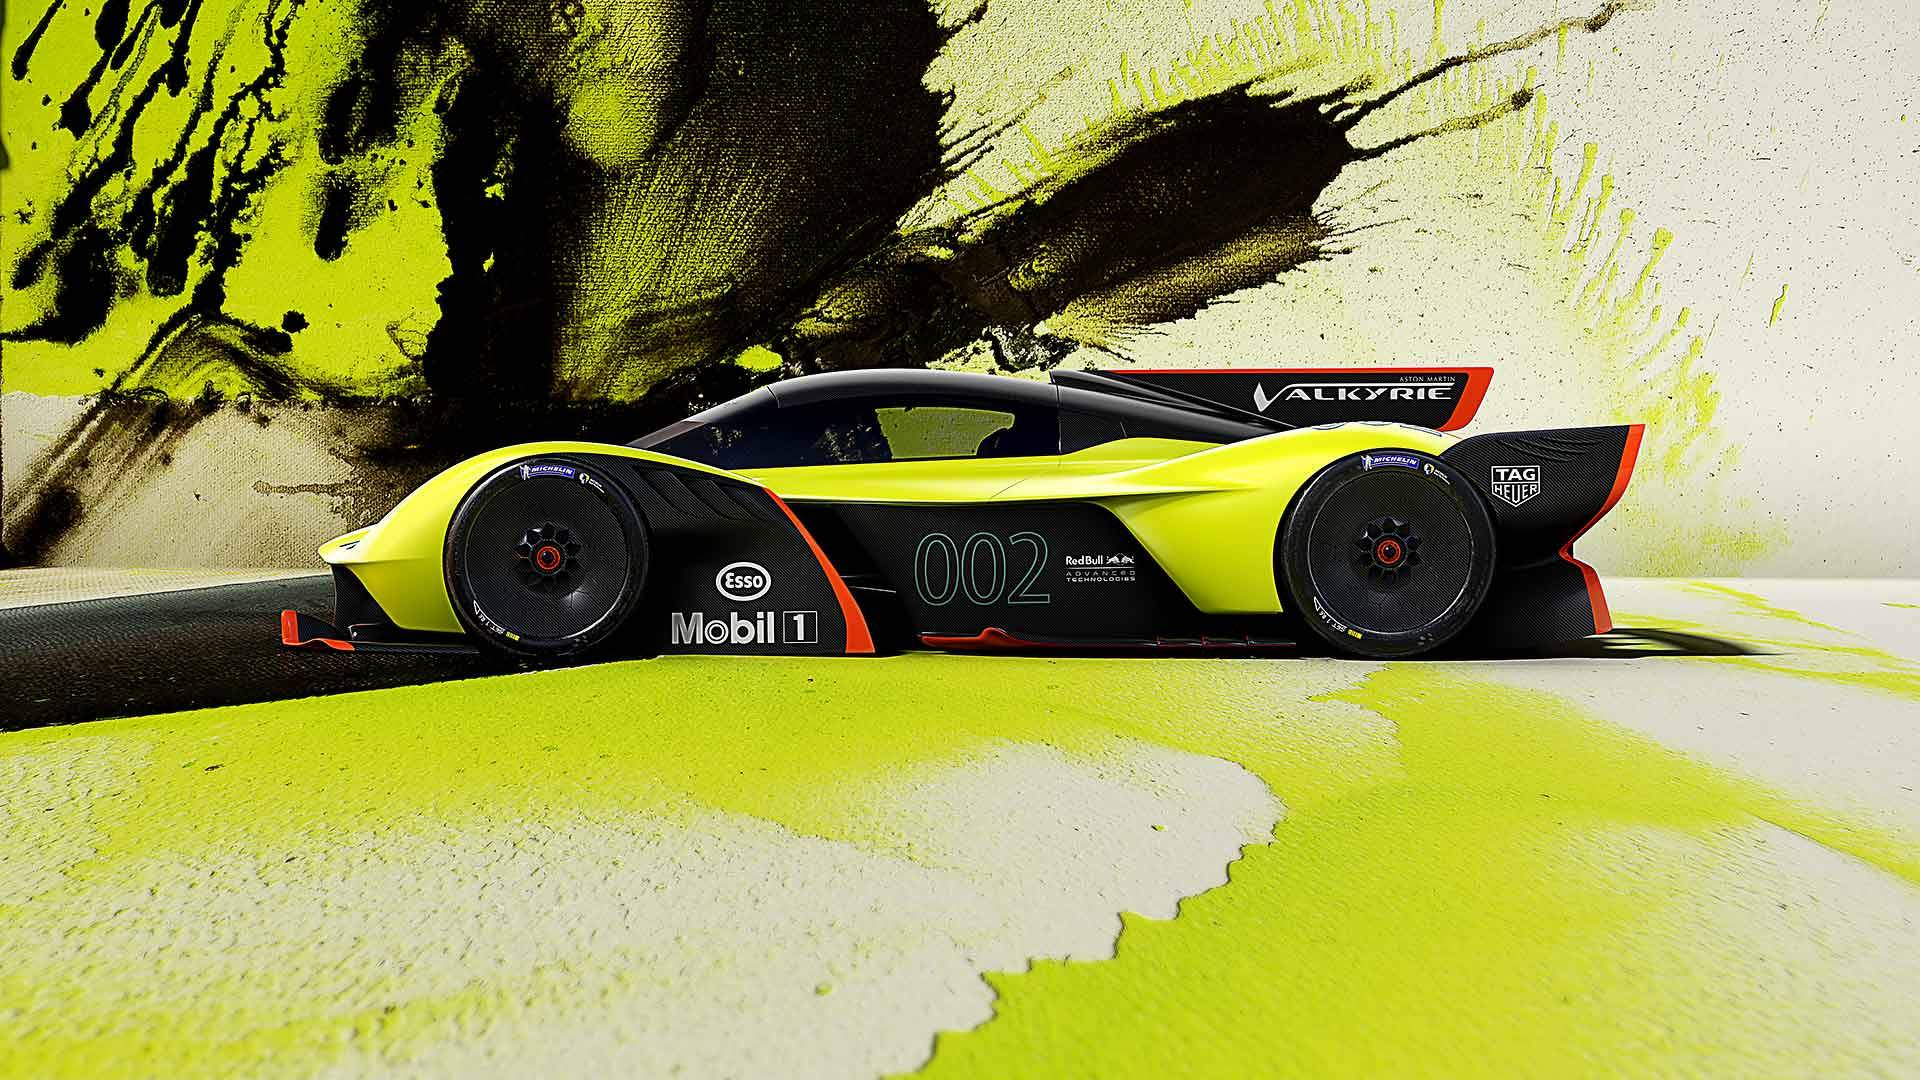 Aston Martin Valkyrie Amr Pro Is A 1 100bhp Track Toy